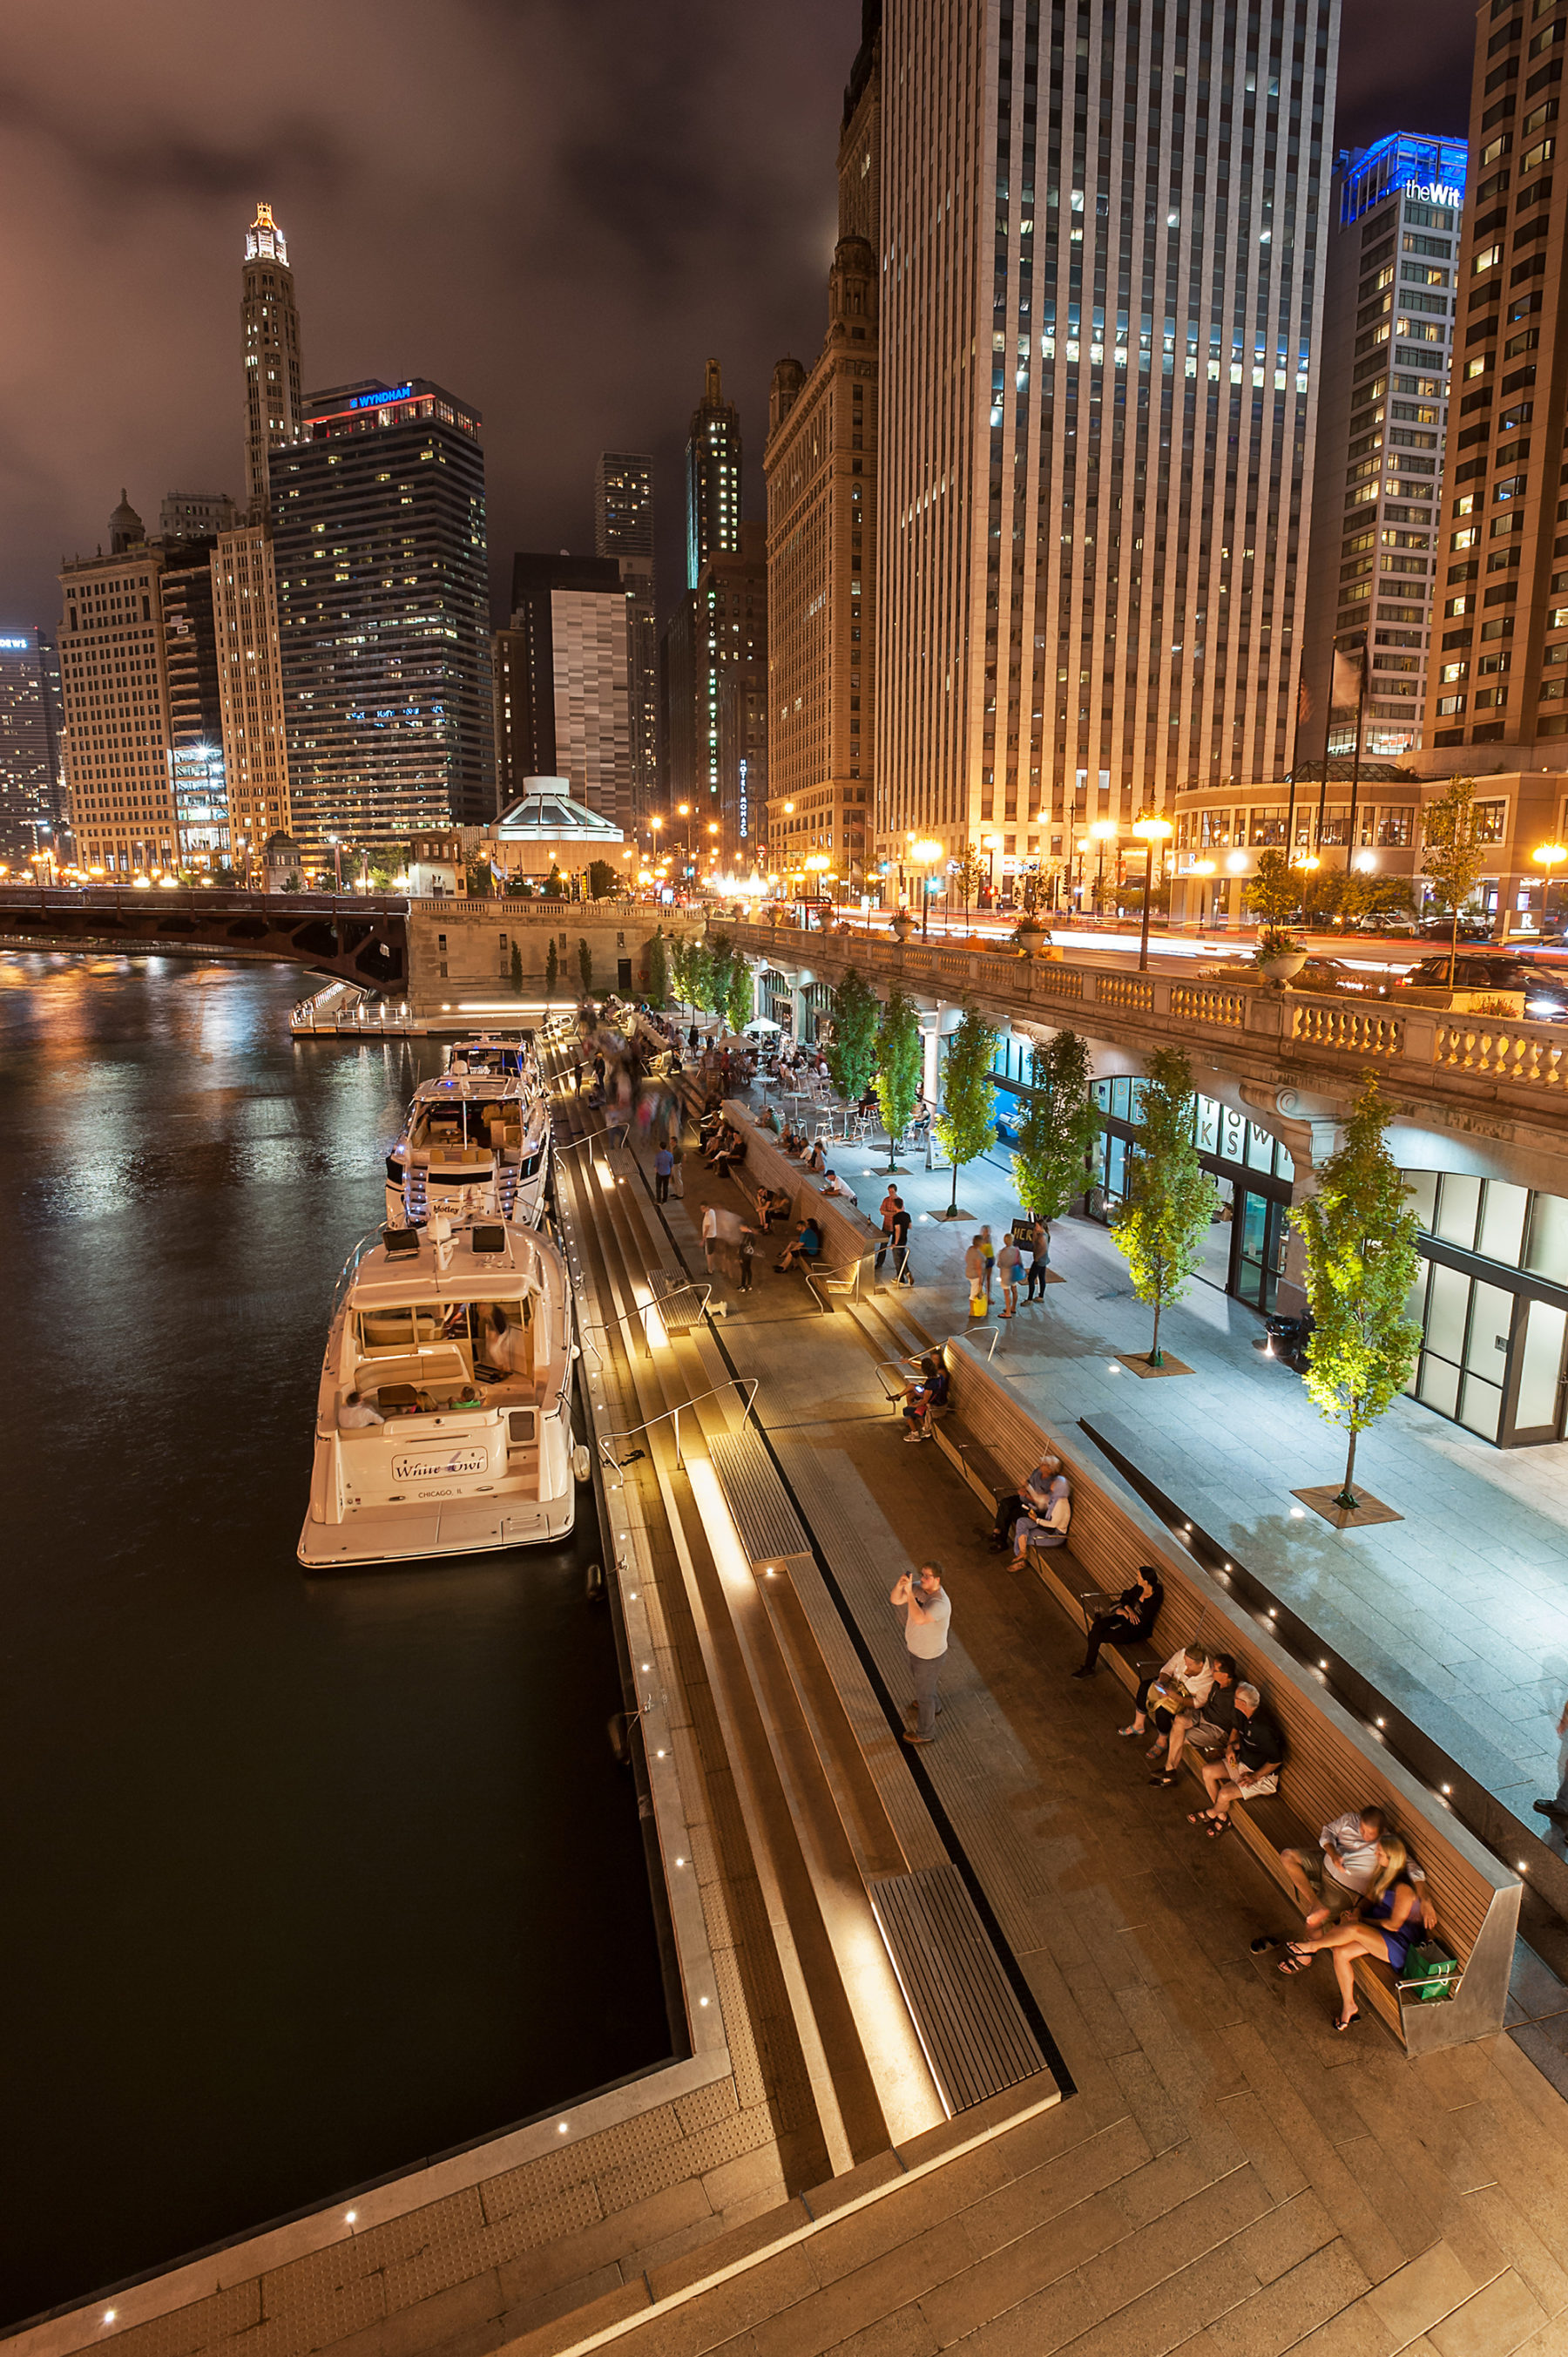 riverwalk boat launch at night